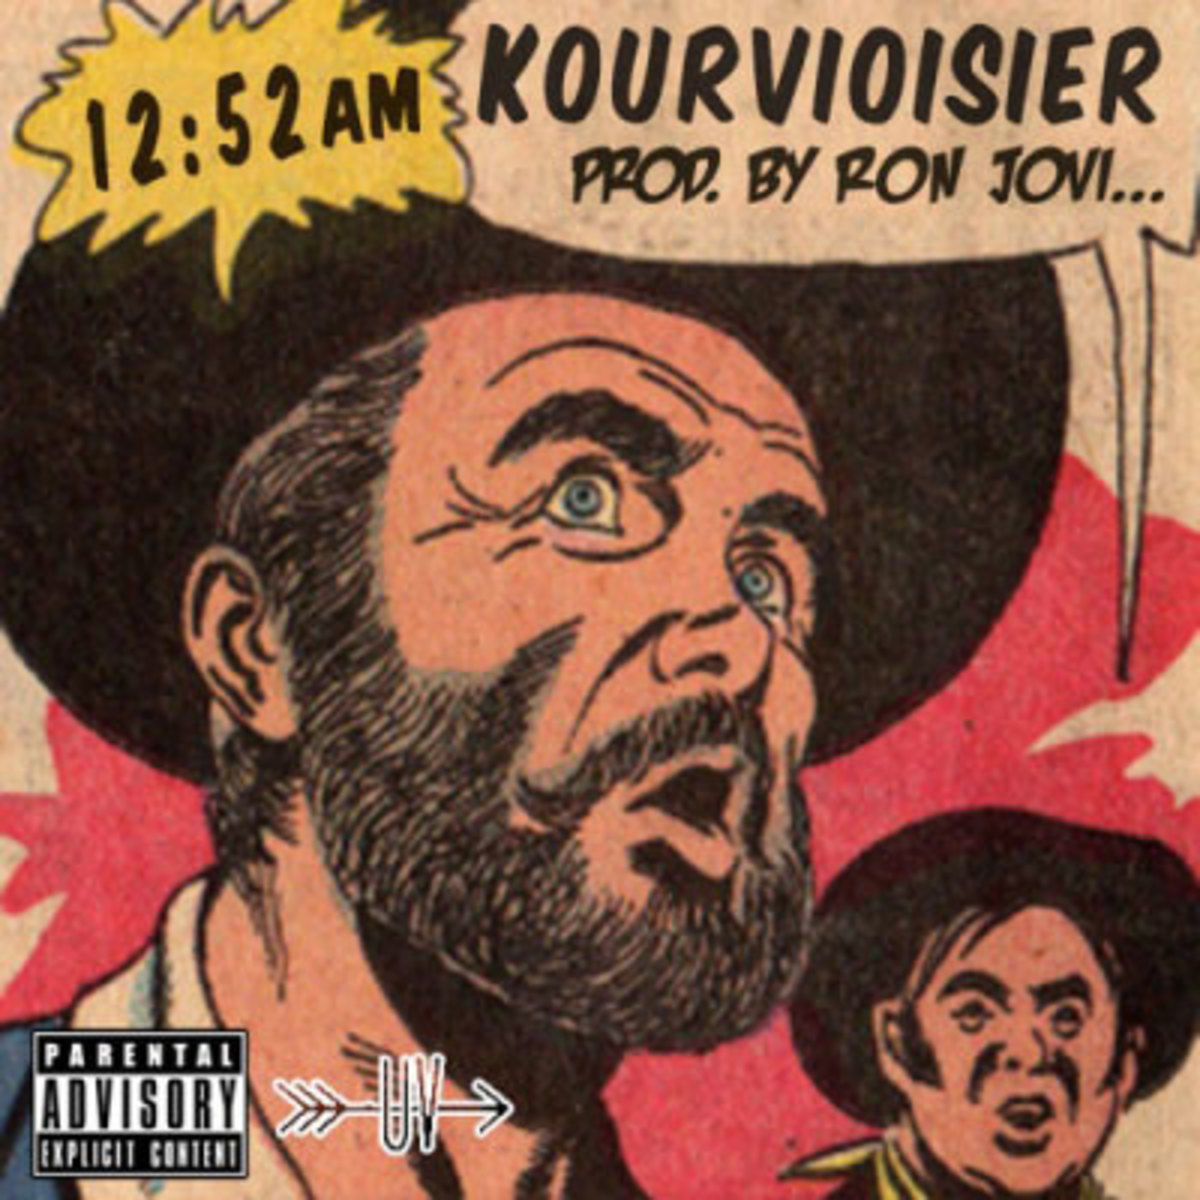 kourvioisier-12-52-am.jpg